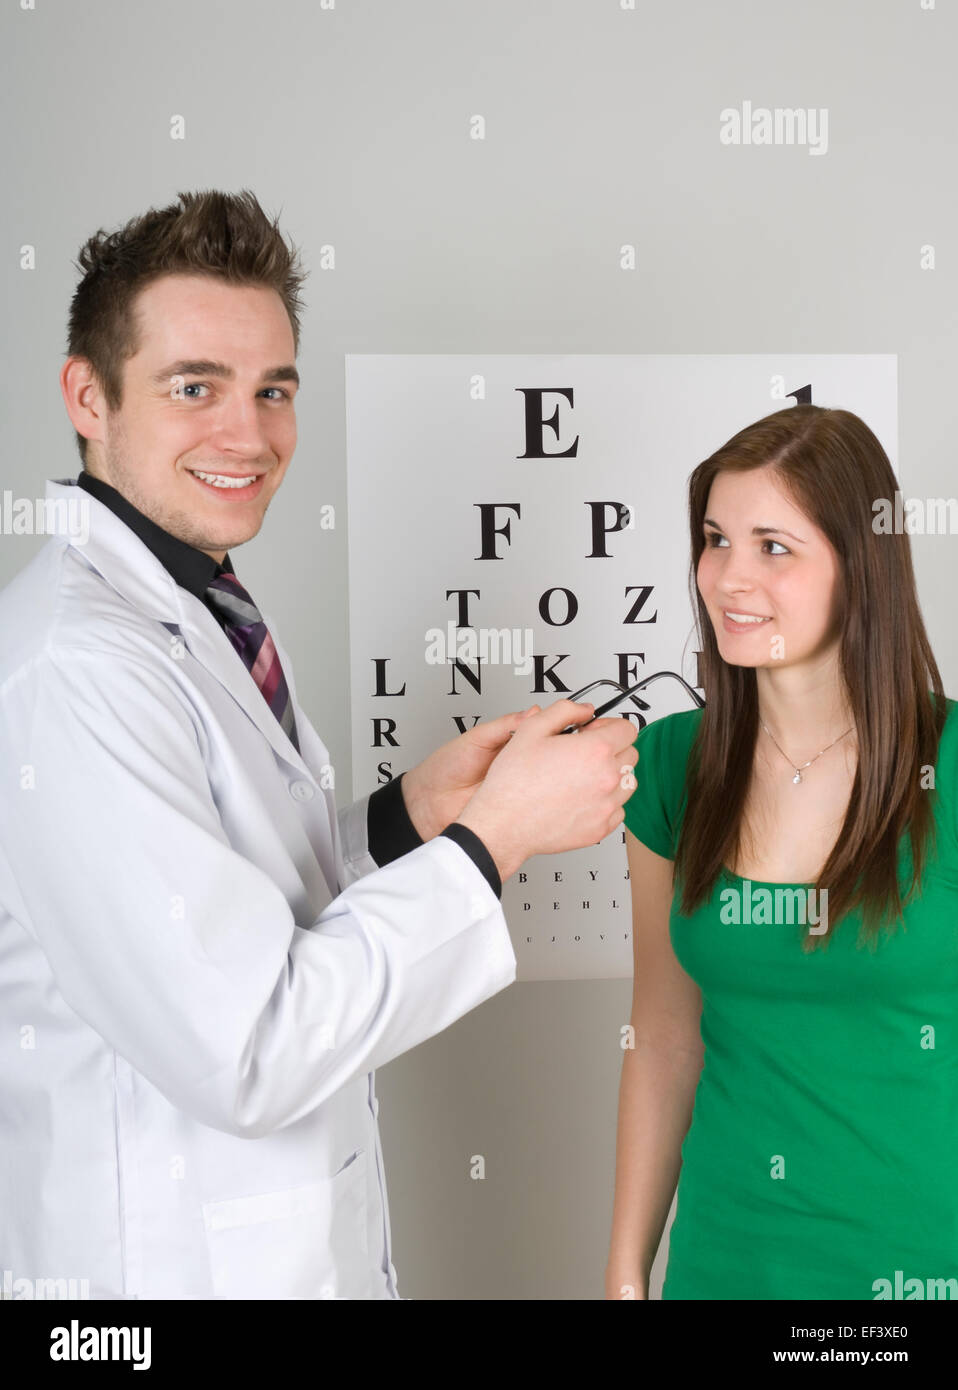 Optometrist and patient - Stock Image